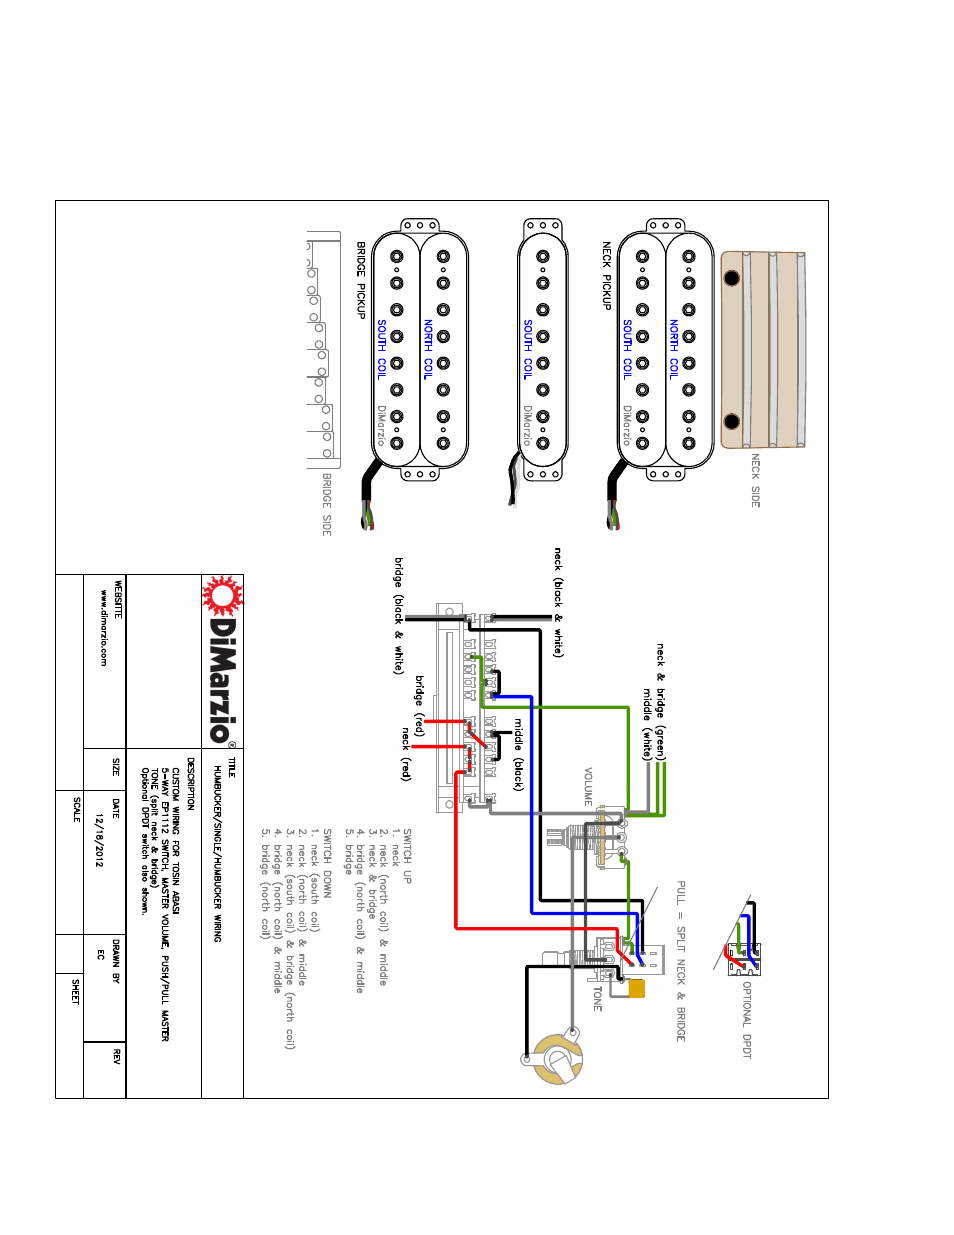 ibanez support wiring diagrams free tool to draw architecture diagram rg 550 body ~ elsalvadorla